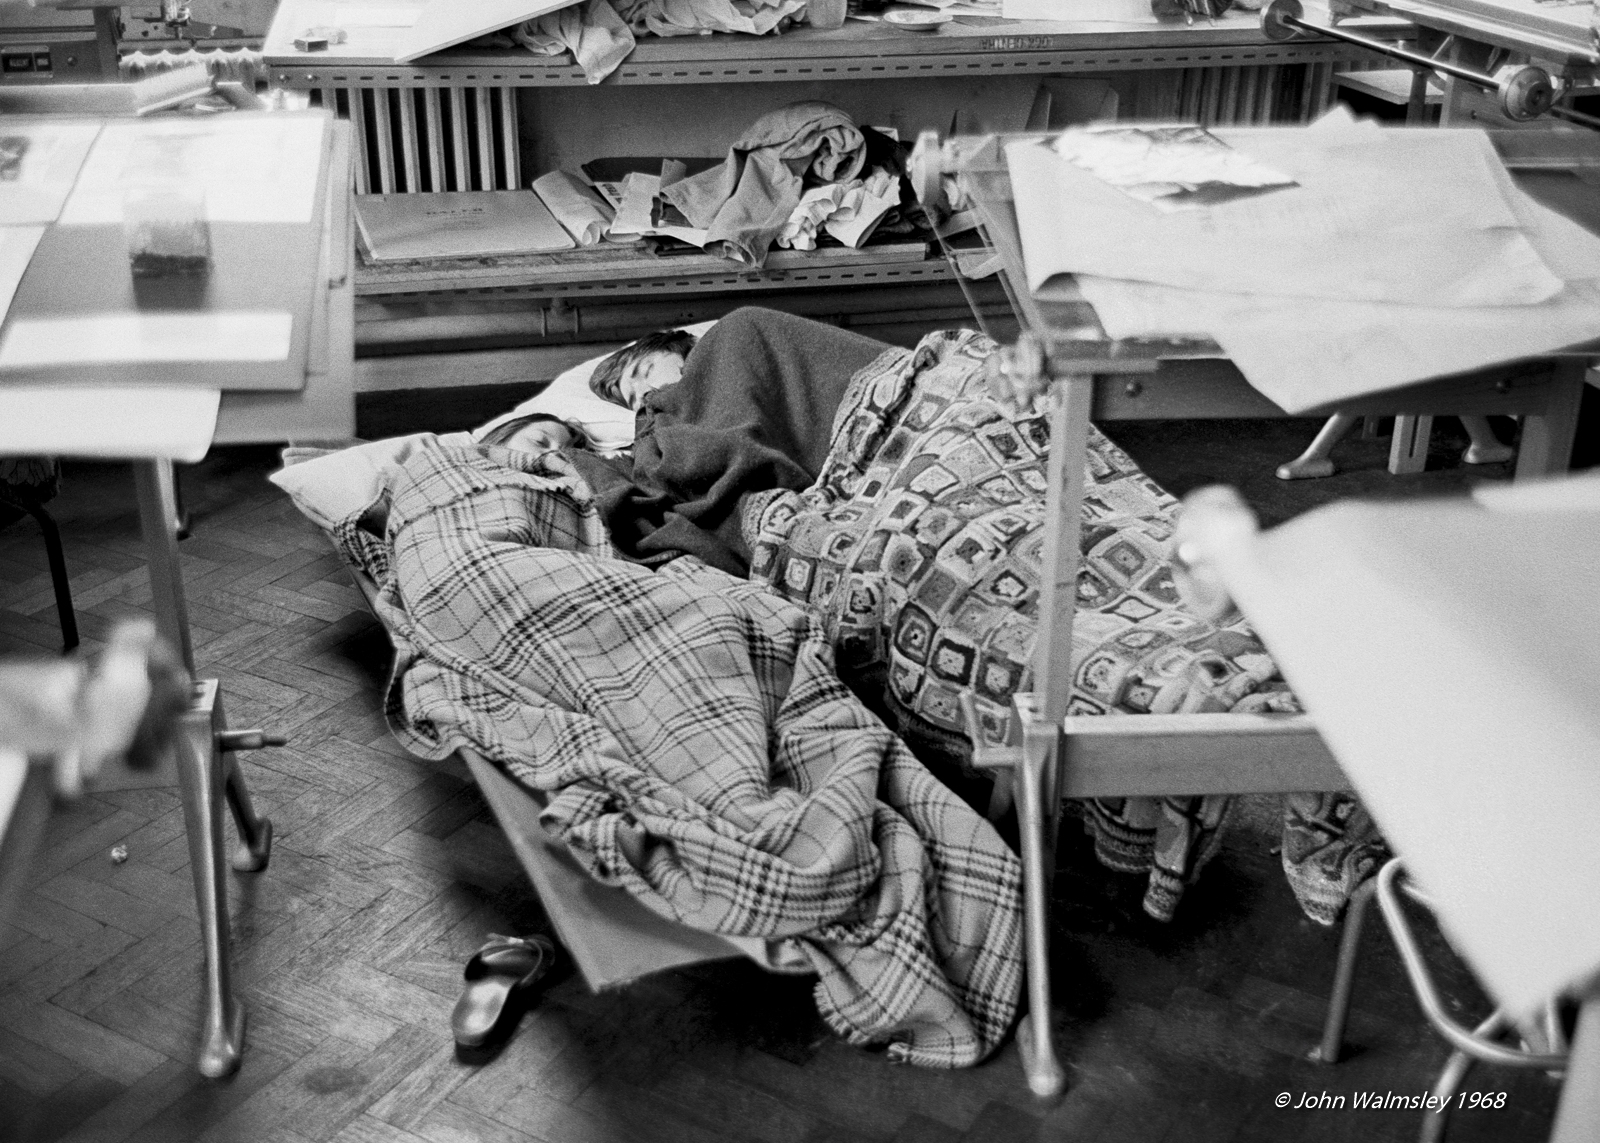 Students typically slept wherever they could during the sit-in